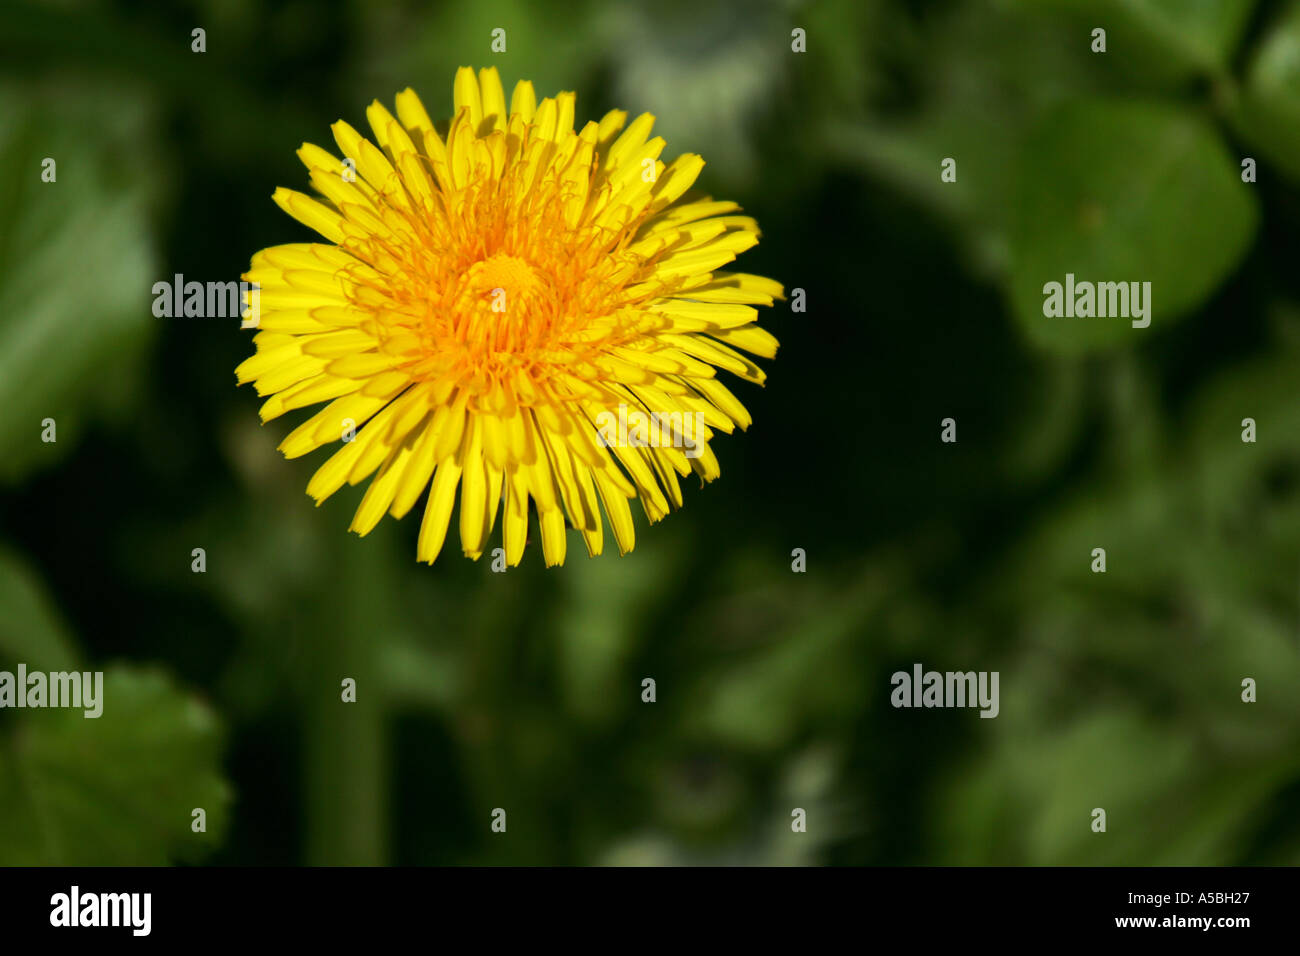 Bright Yellow Dandelion Weed Flower In Full Bloom During Spring